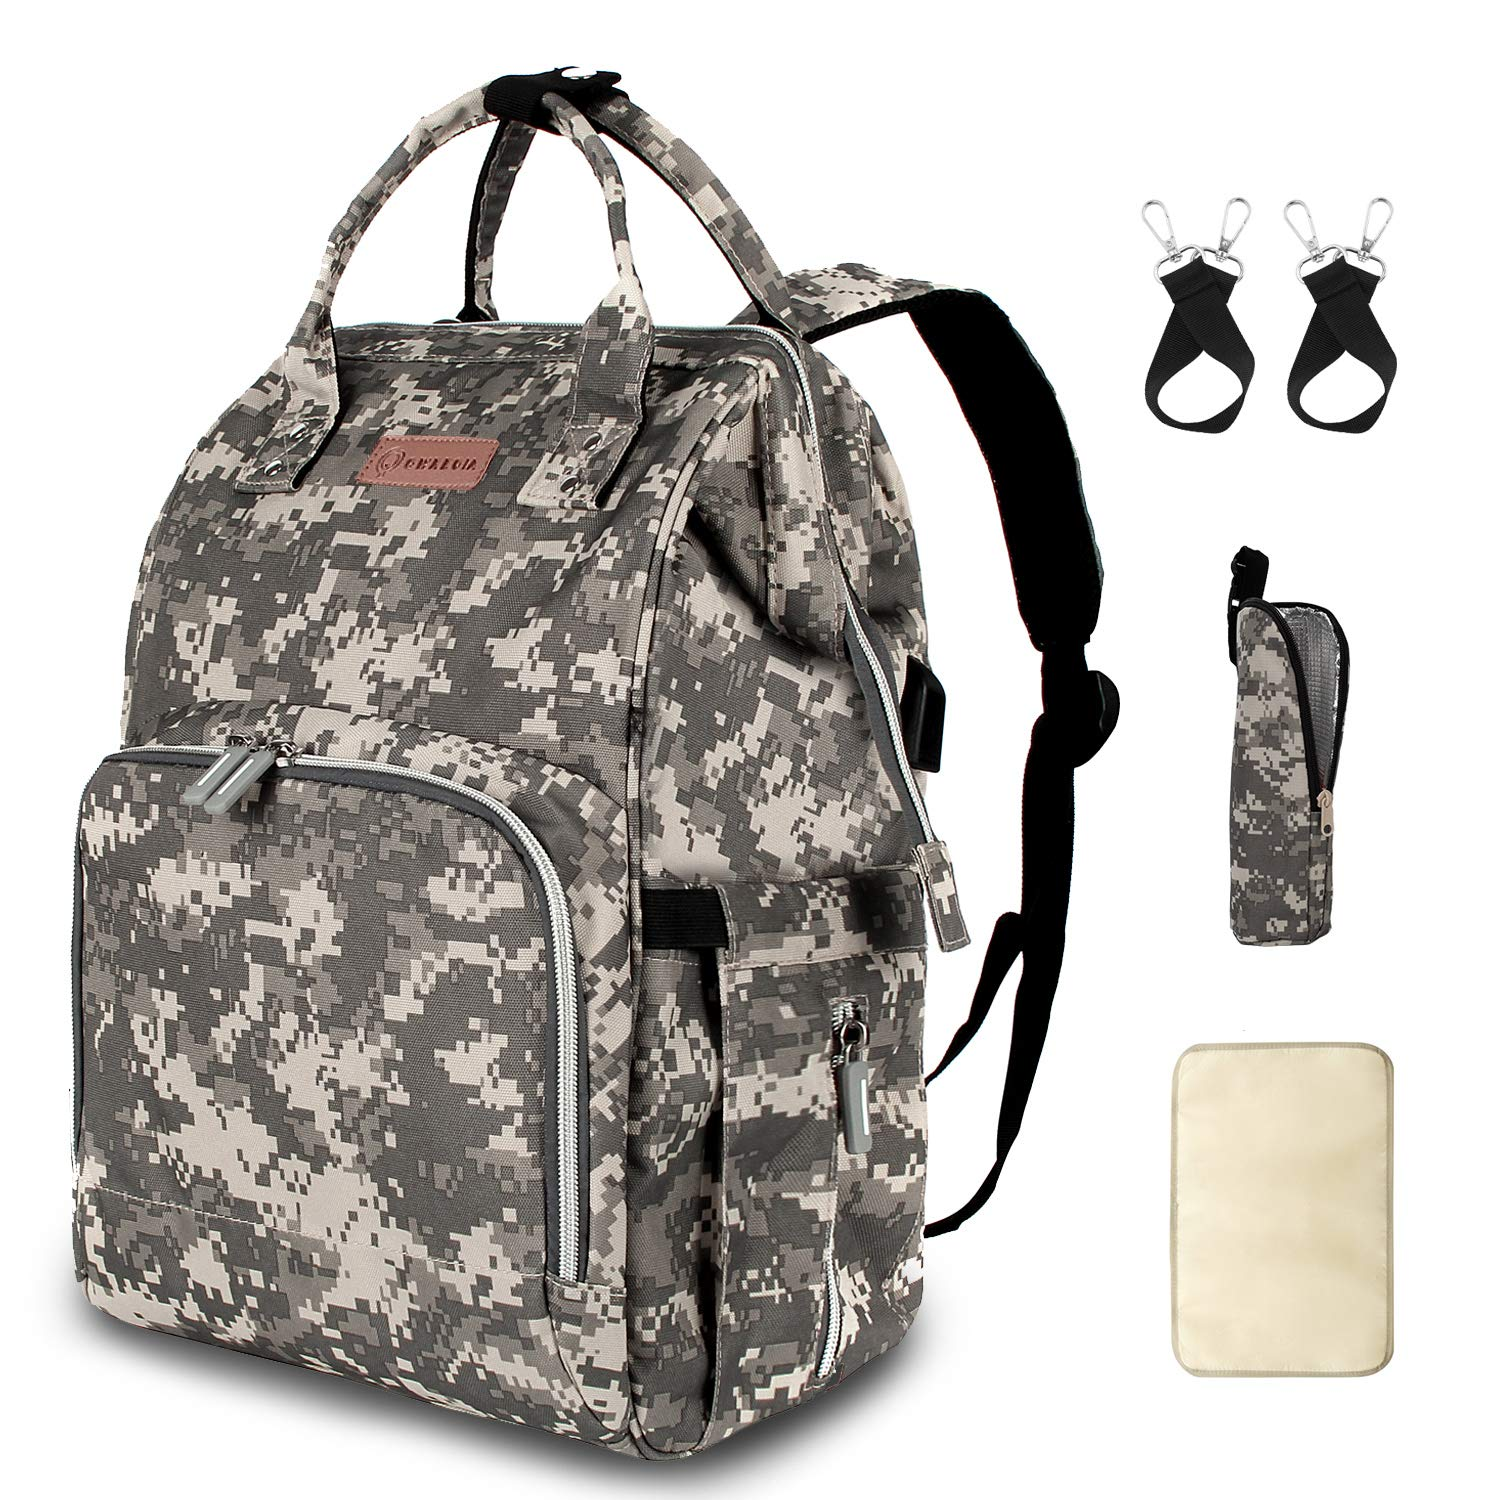 Diaper Bag Backpack with Stroller Straps Insulated Pocket and Changing Pad, Camouflage